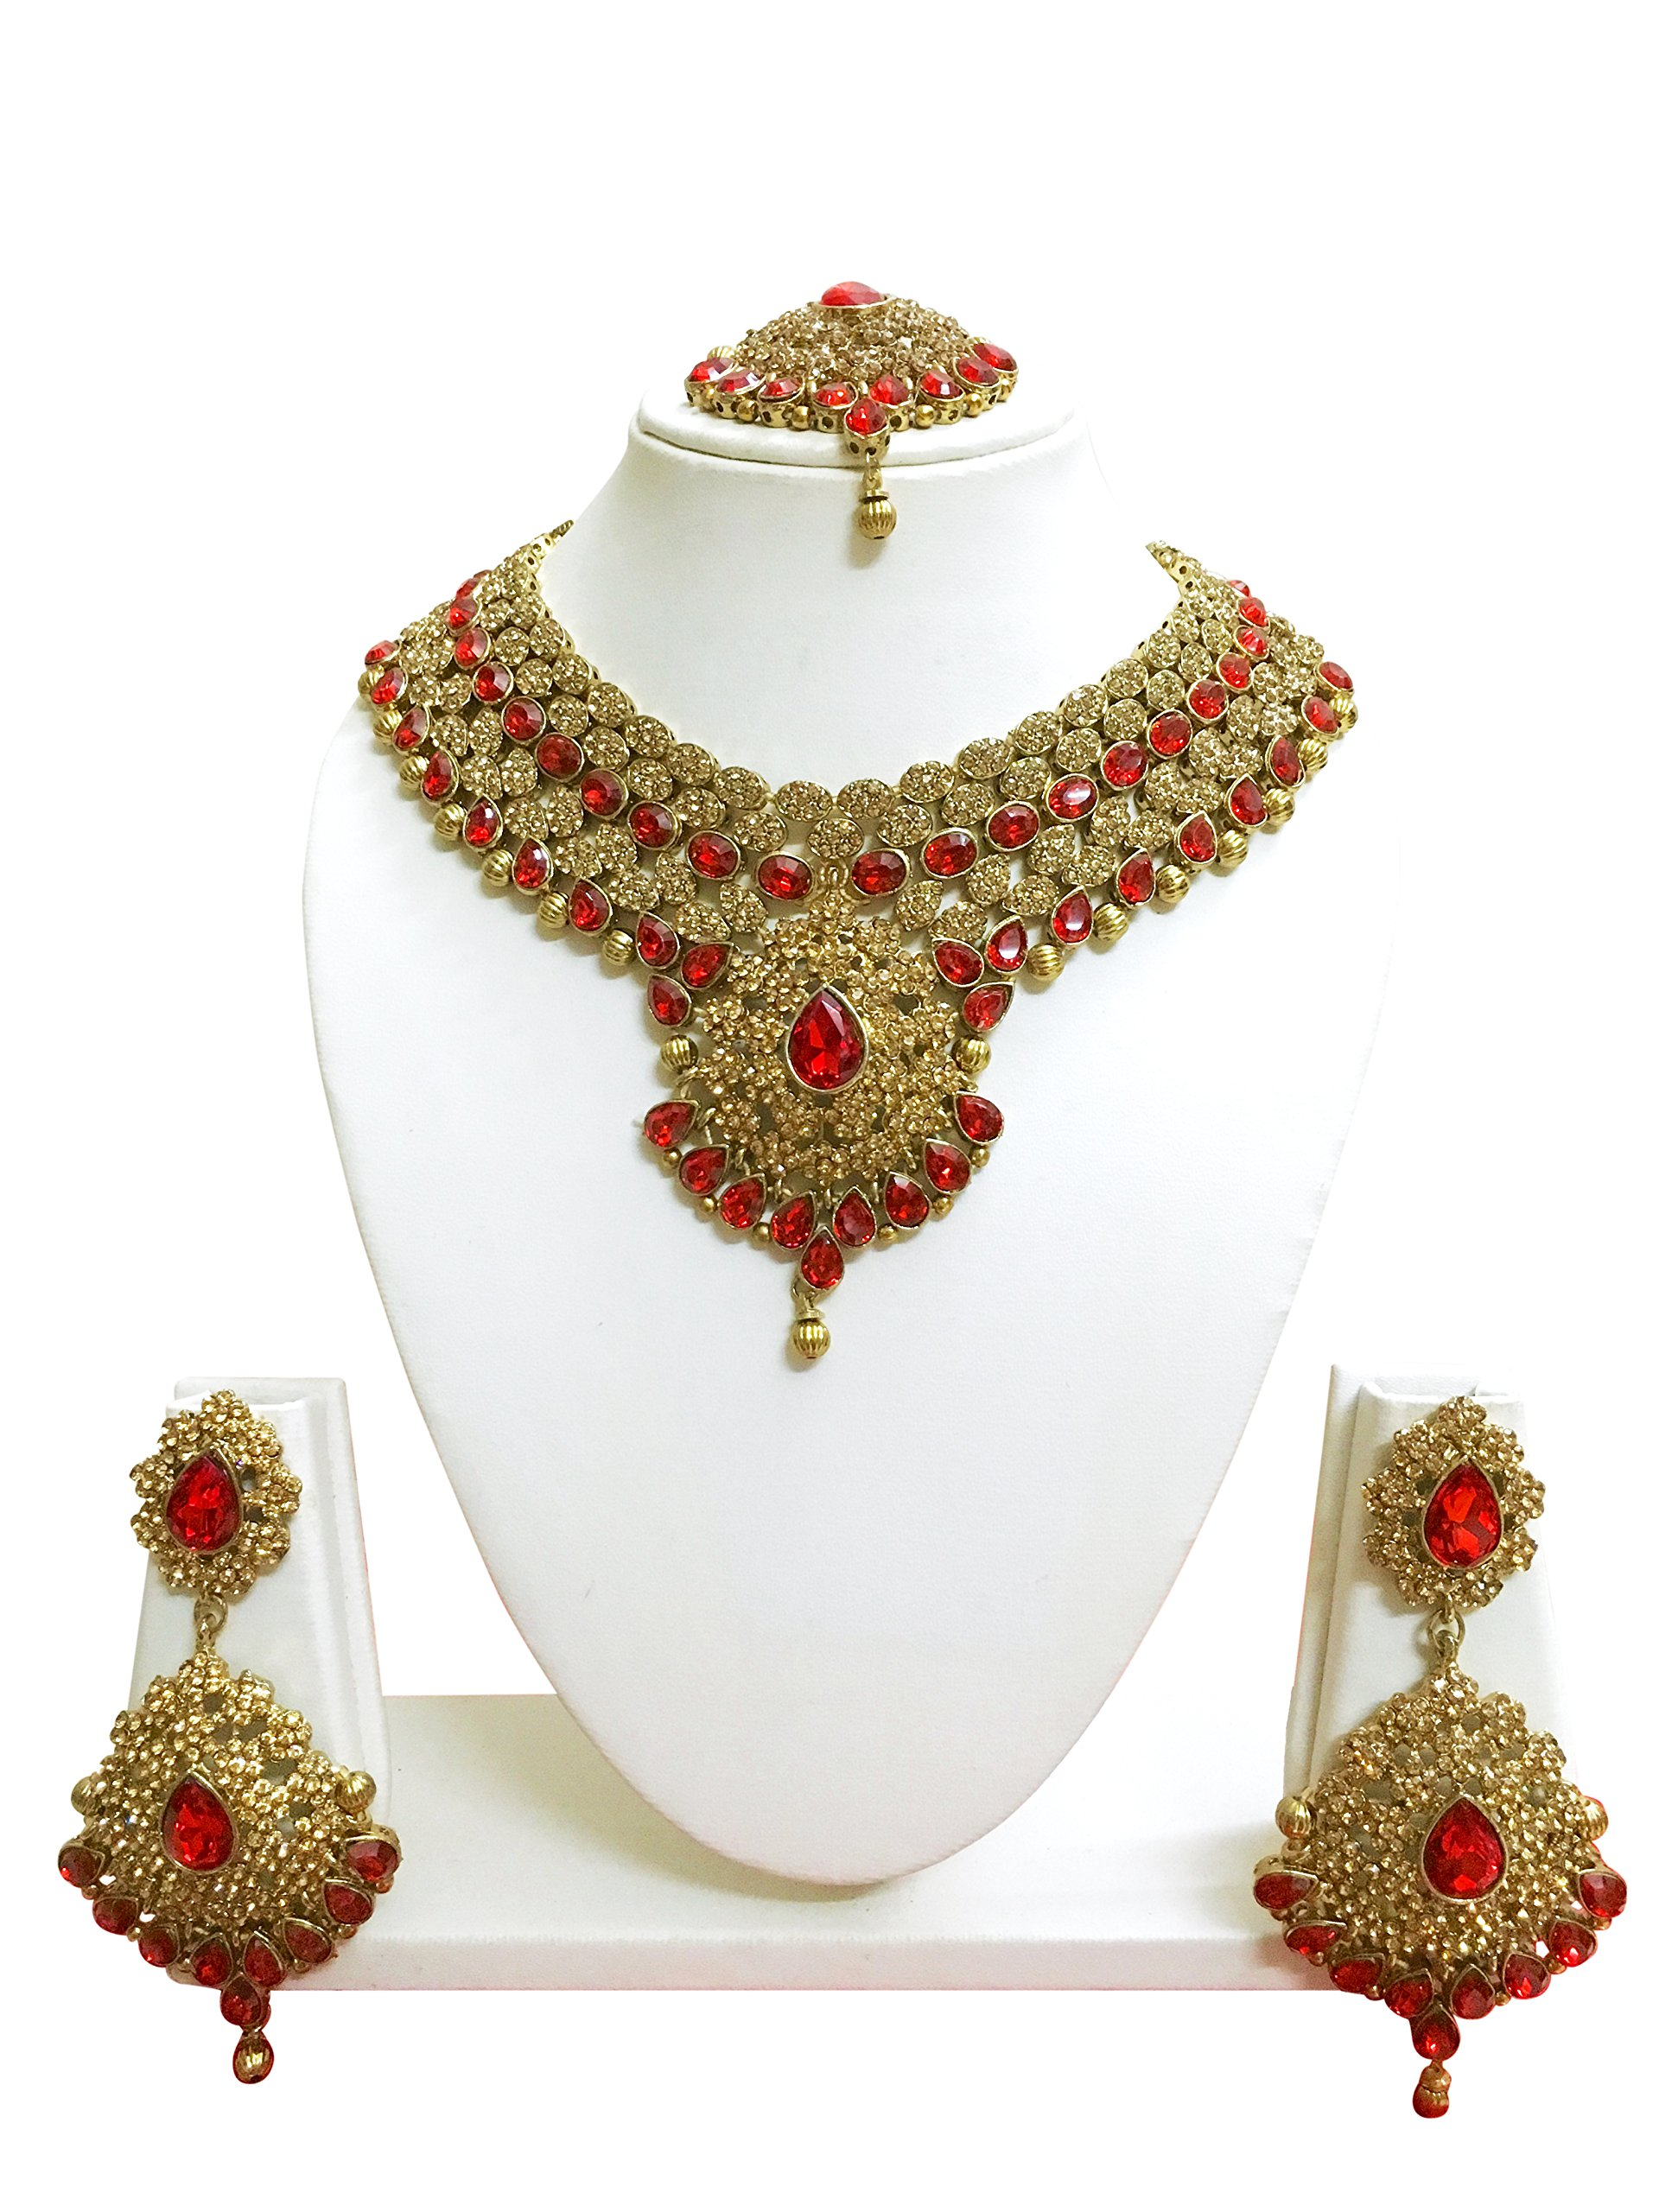 CROWN JEWEL Indian Bollywood Style Designer Gold Plated Bridal Fashion Jewelry Necklace Earring Set For Women (Red)